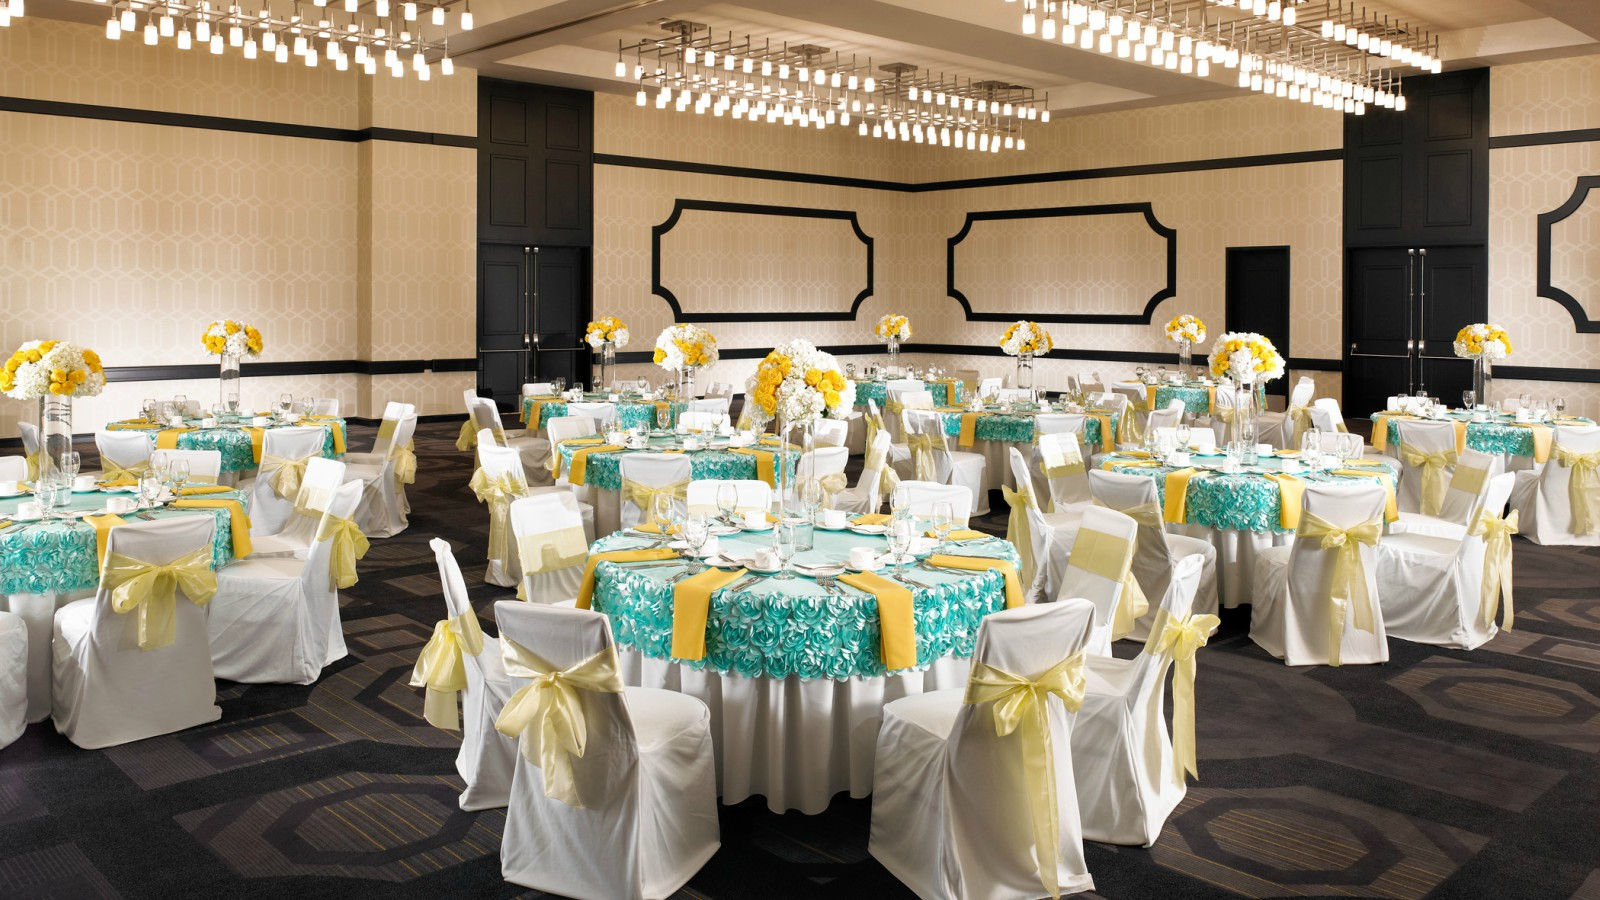 Los Angeles Event Space - Grand Ballroom